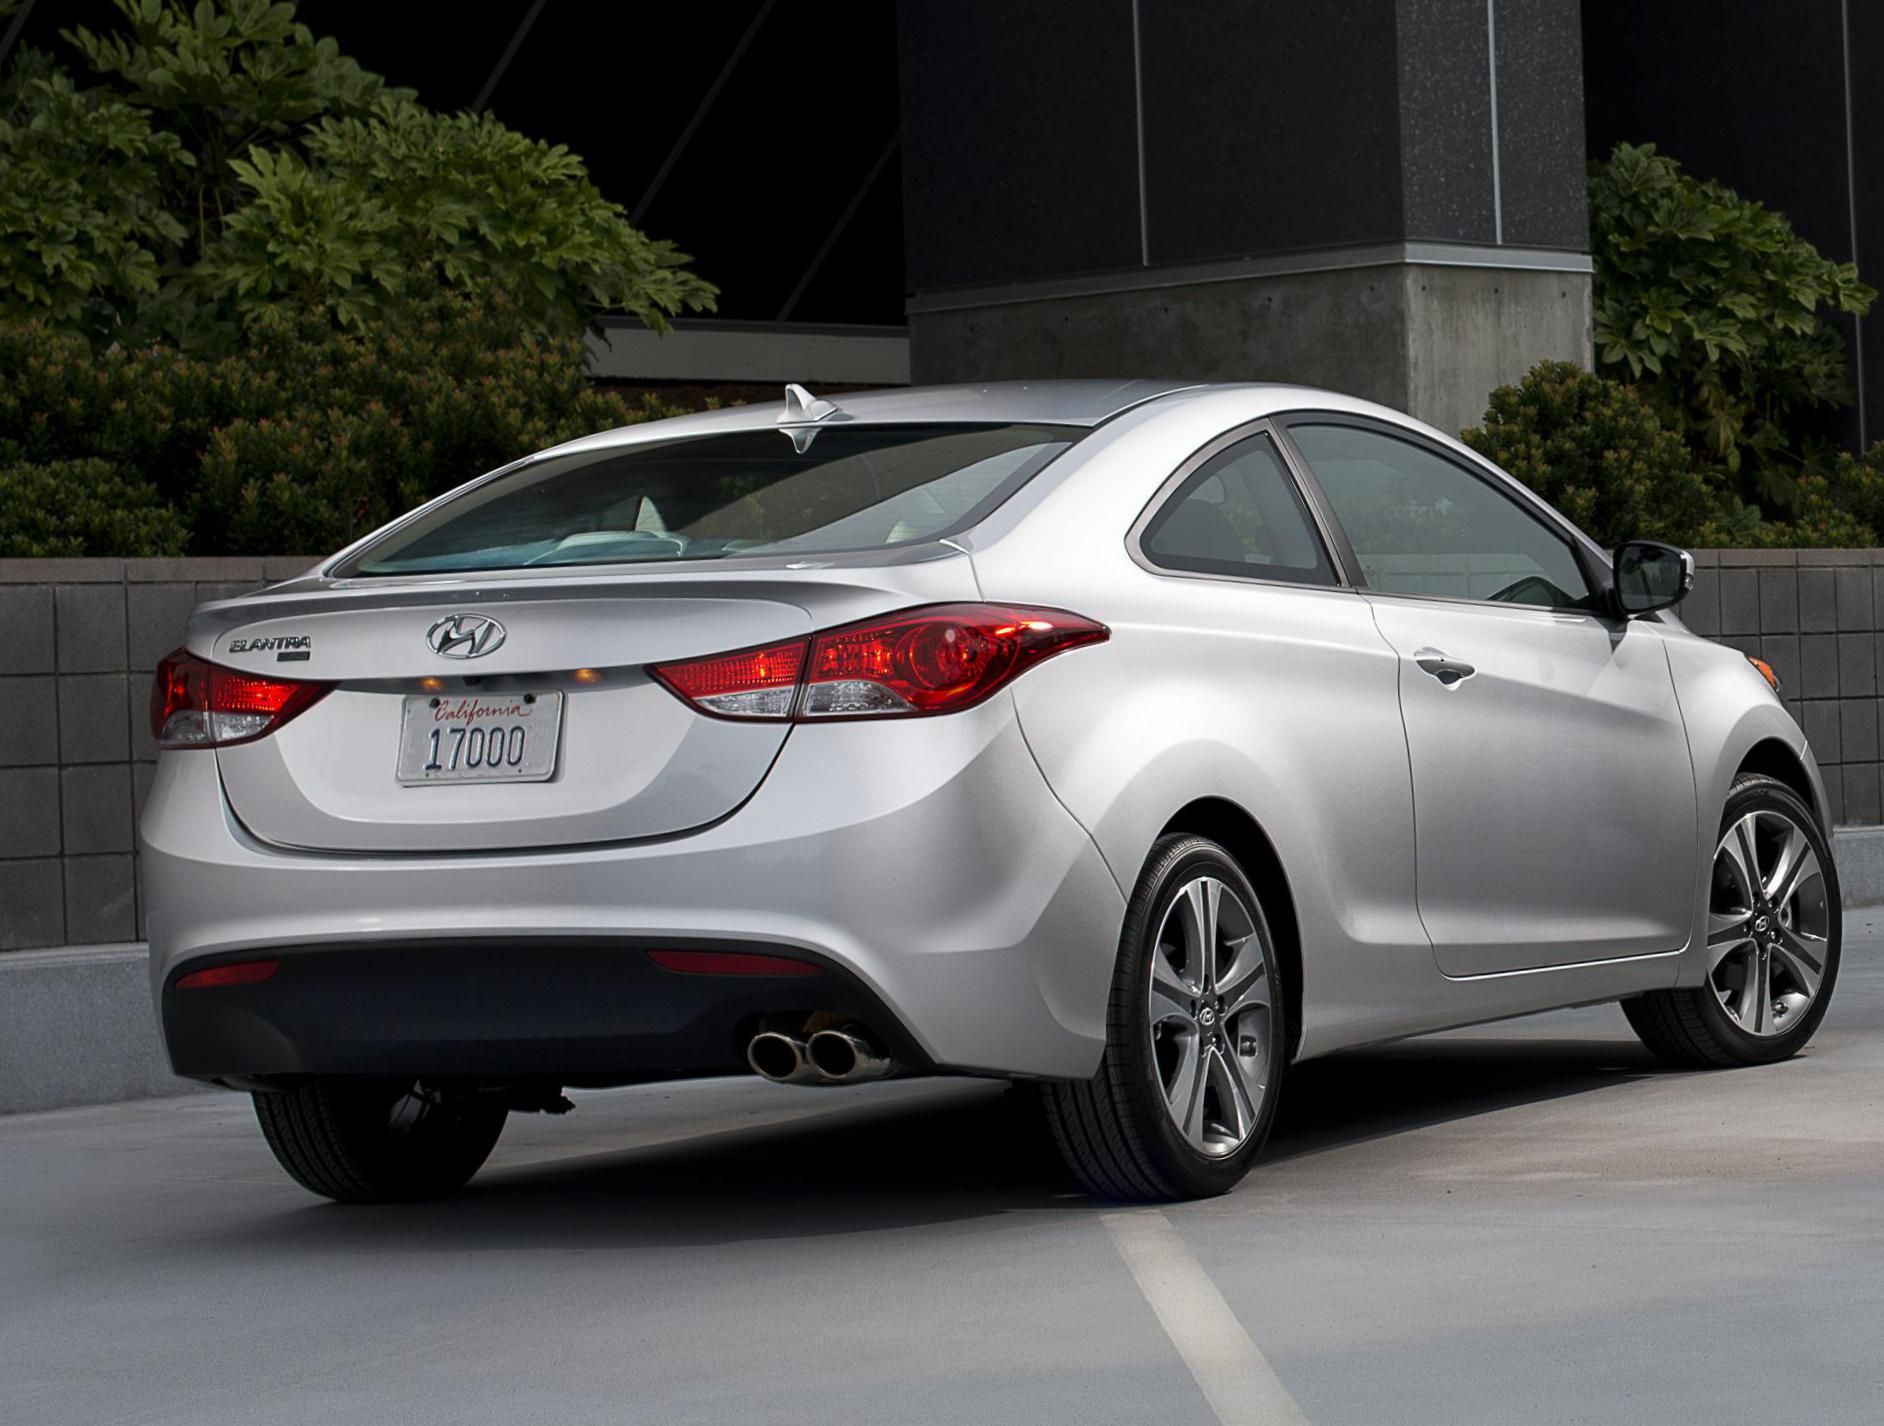 Hyundai Elantra Coupe reviews 2012